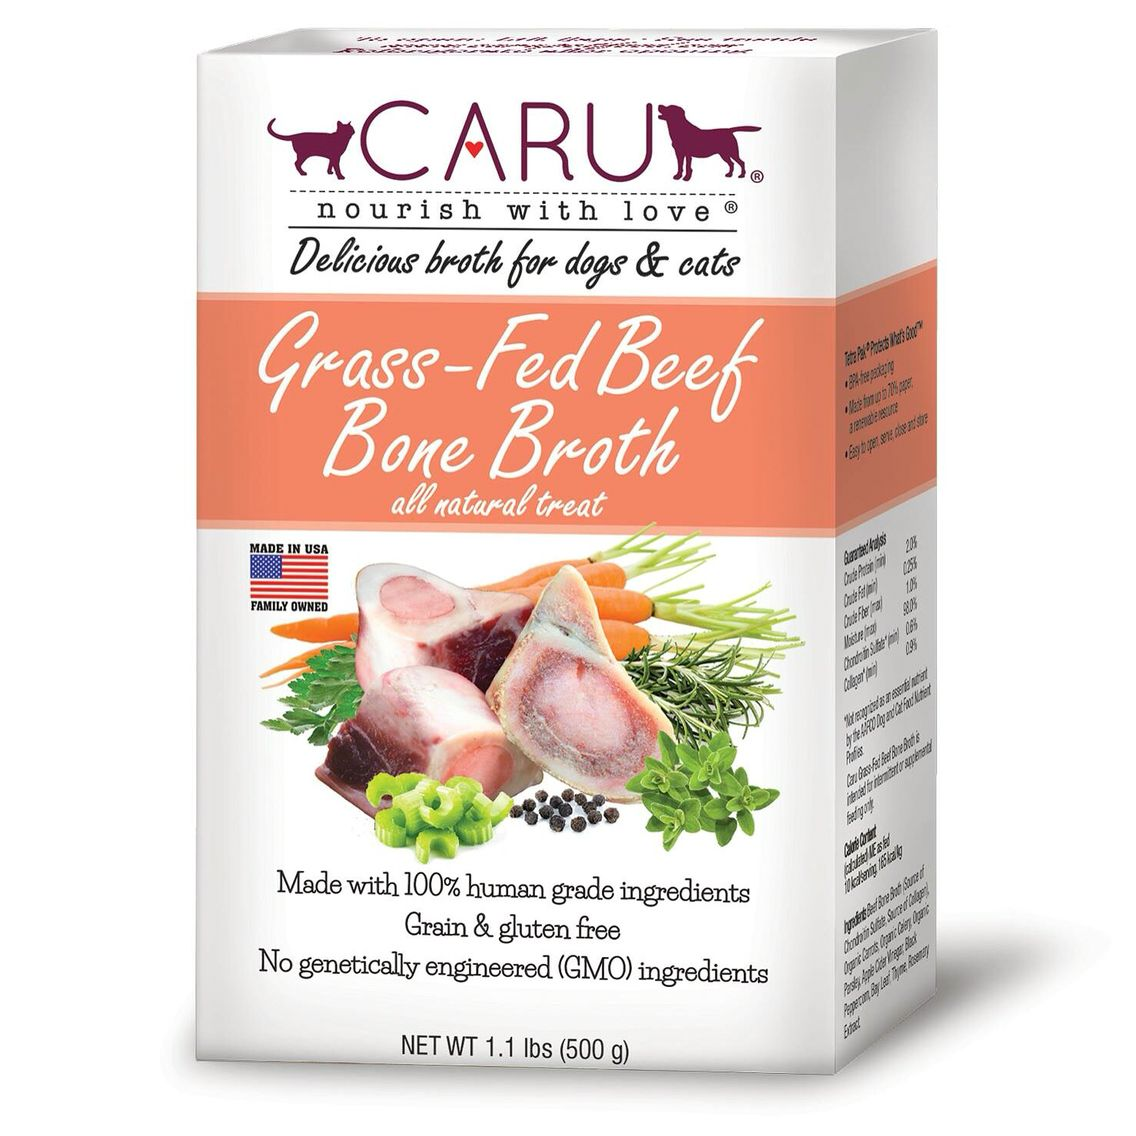 CARU is pleased to announce the introduction of Grass Fed